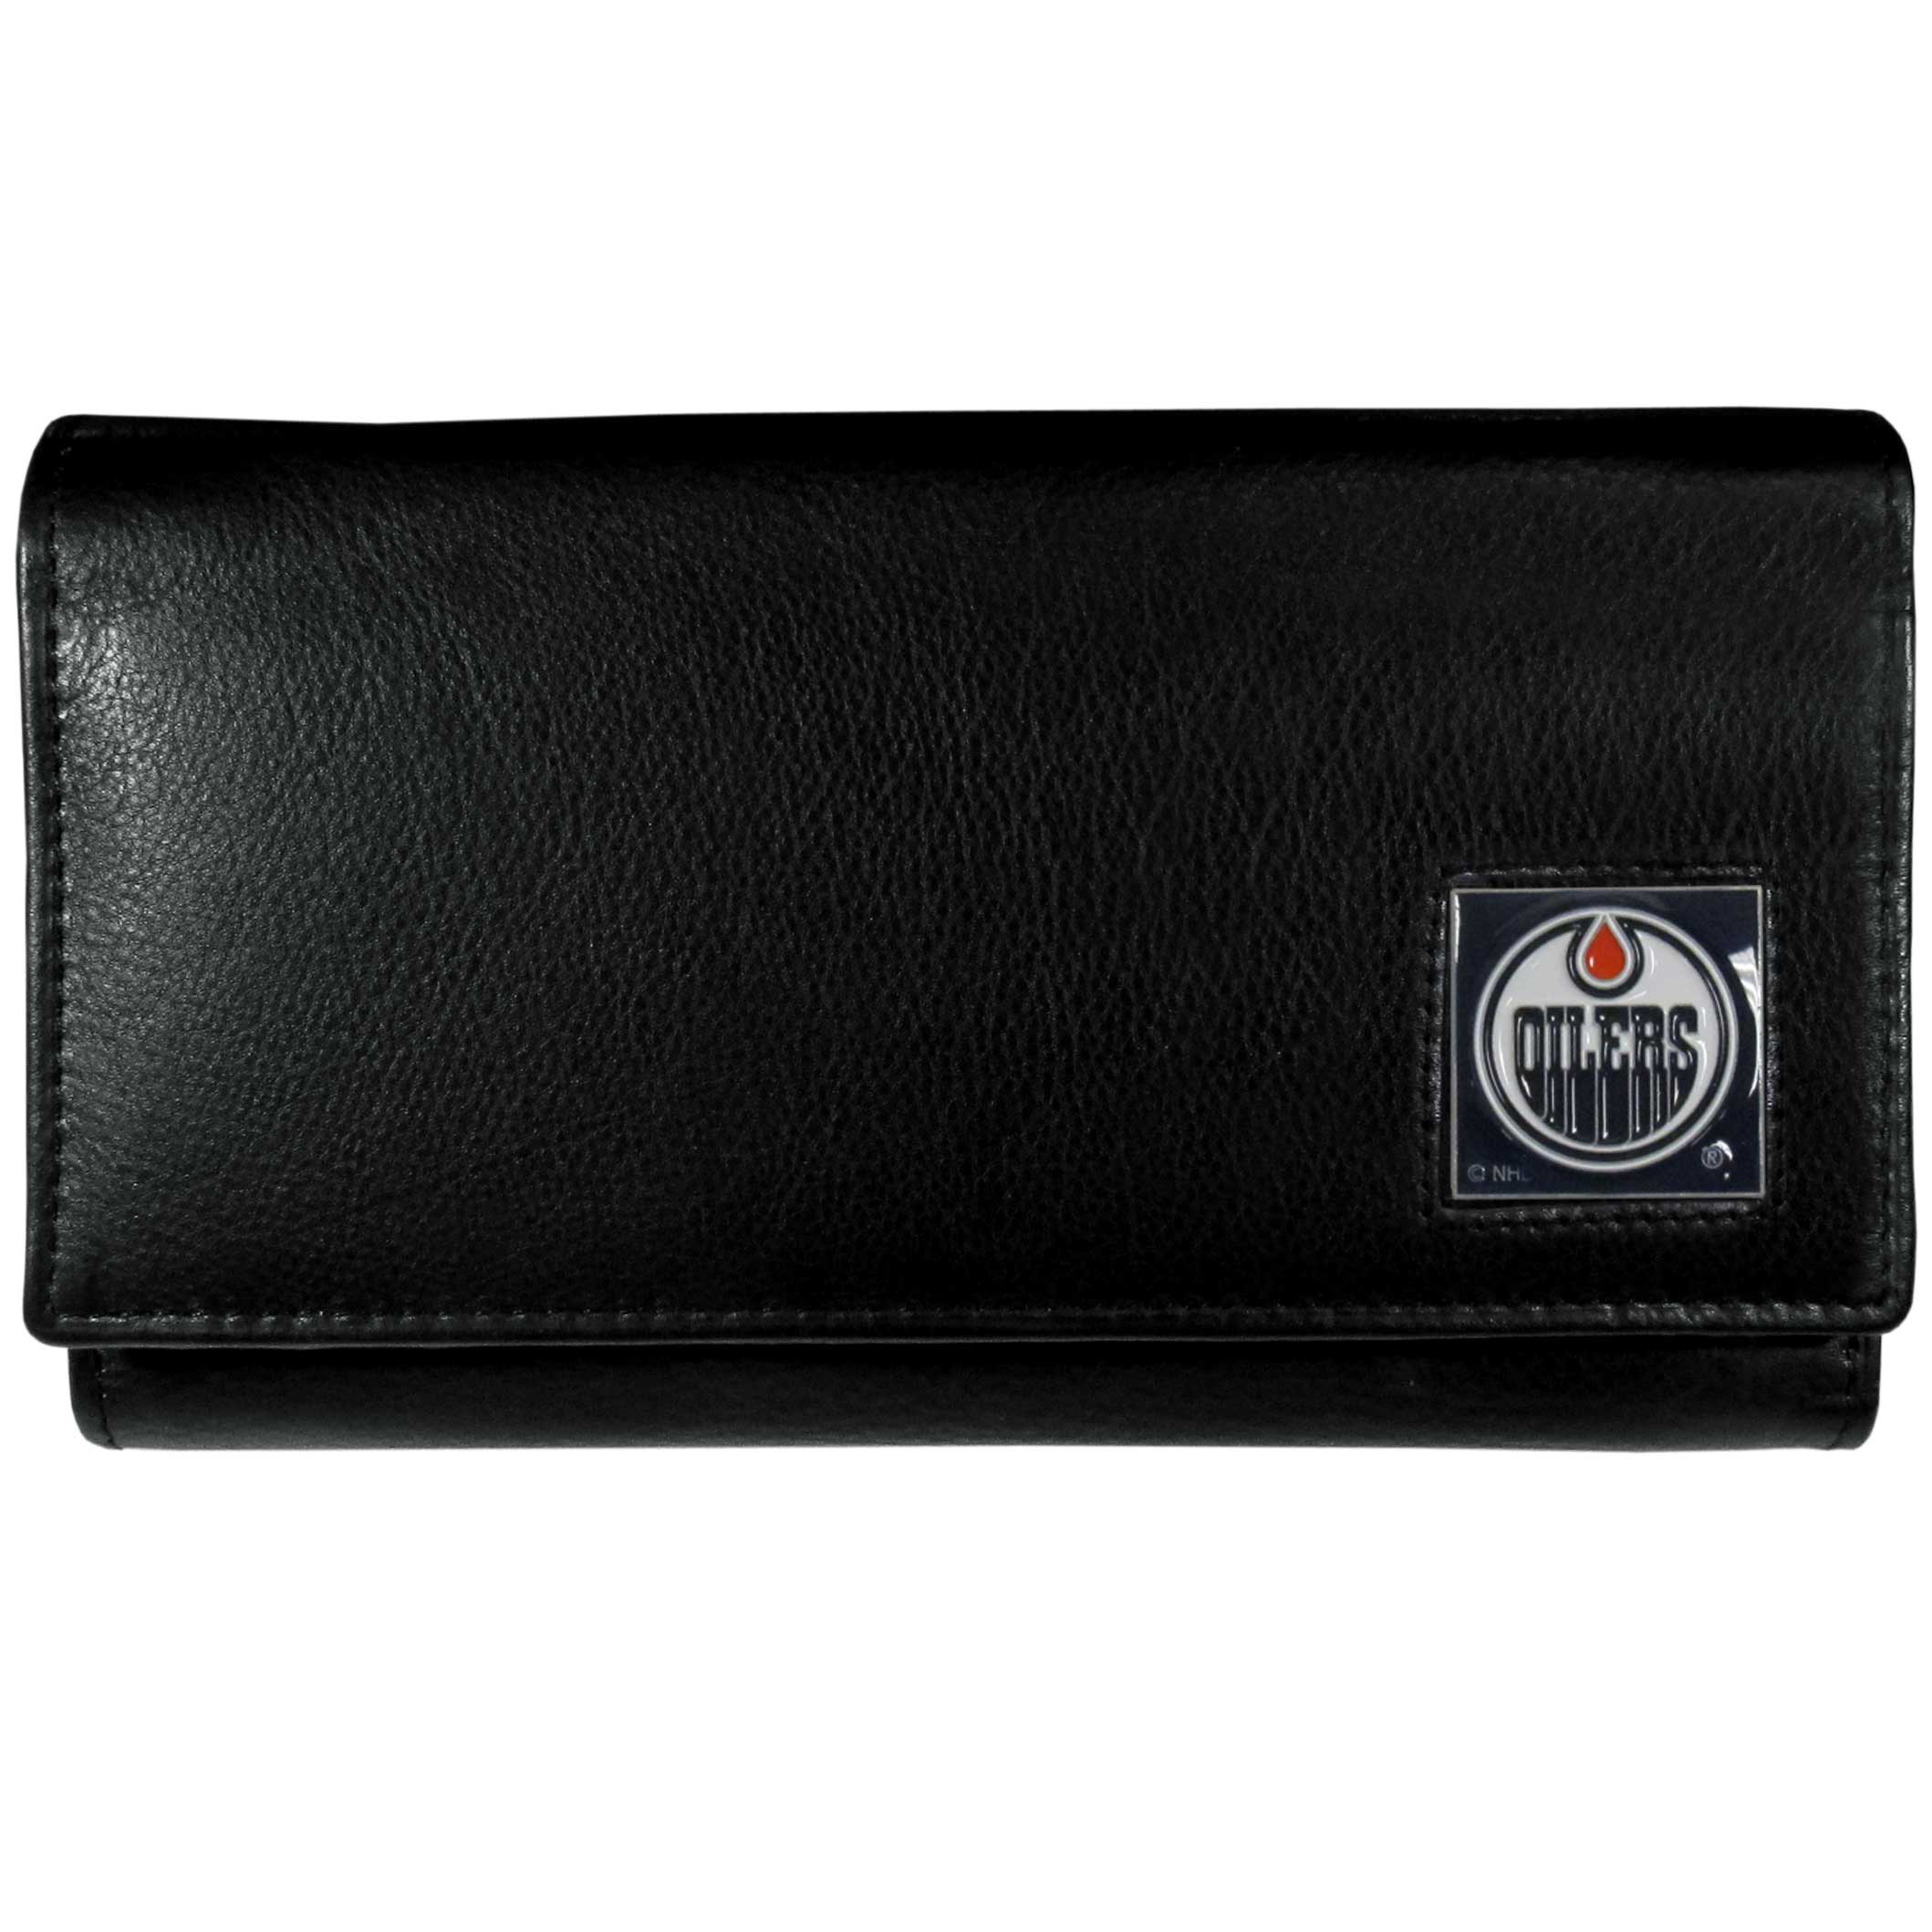 Edmonton Oilers® Leather Women's Wallet - This genuine leather women's pocketbook features 9 credit card slots, a windowed ID slot, spacious front pocket, inner pocket and zippered coin pocket. The front of the pocketbook has a hand painted metal square with the Edmonton Oilers® primary logo.